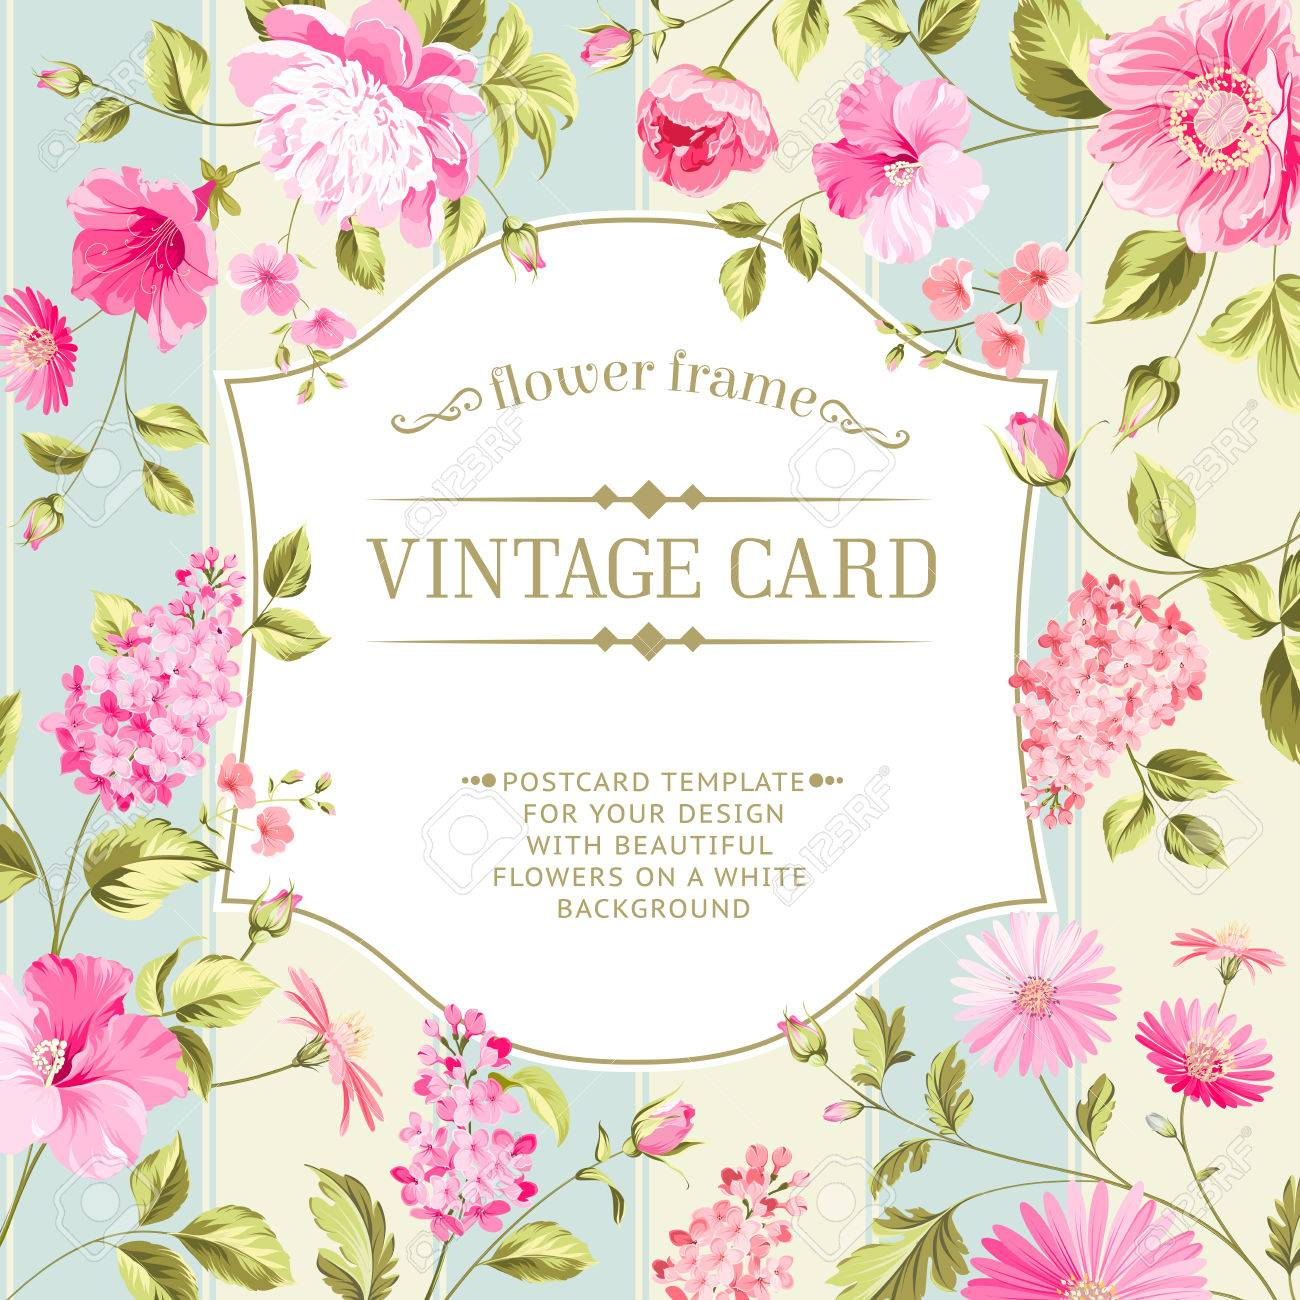 lable card with template text and flower pattern on background